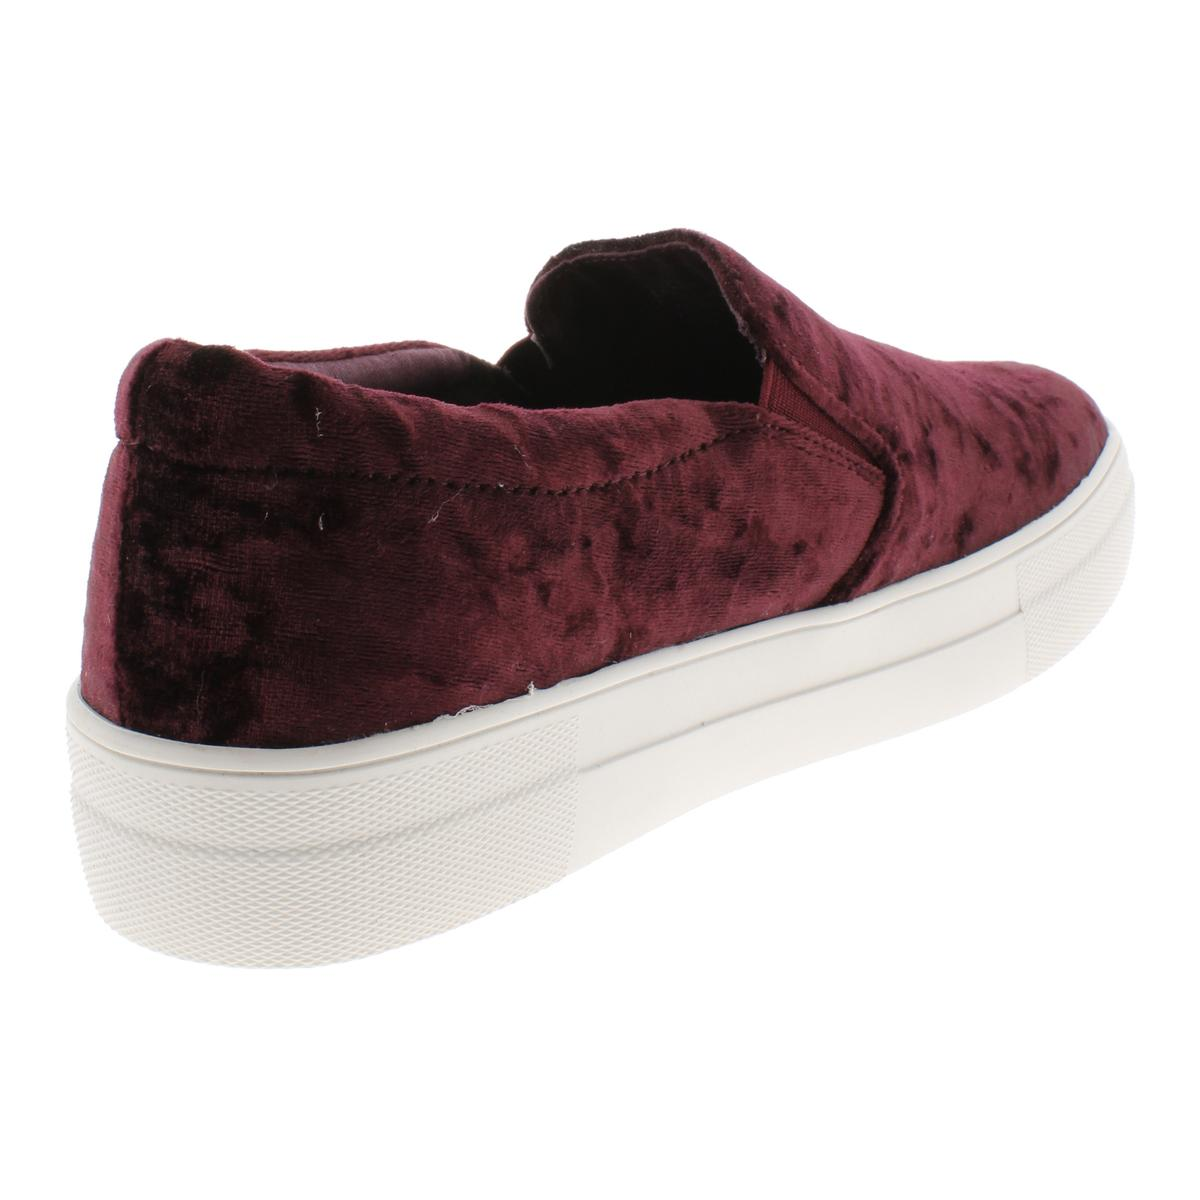 Steve-Madden-Womens-Gills-Classic-Low-Top-Fashion-Loafers-Sneakers-BHFO-8263 thumbnail 8